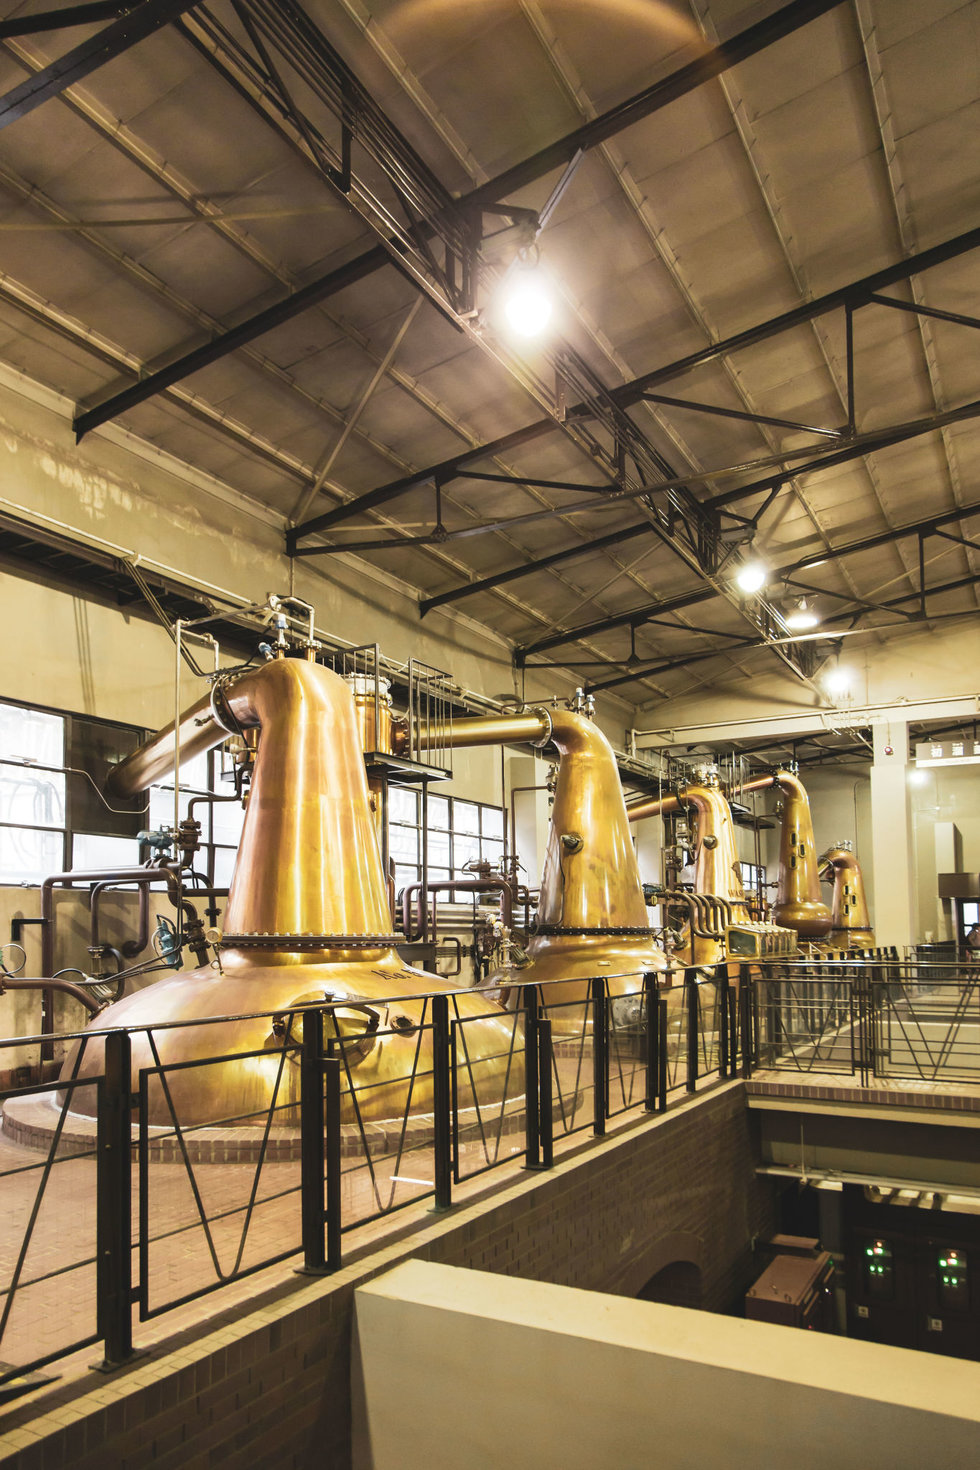 Copper pot stills at the Yamazaki Distillery